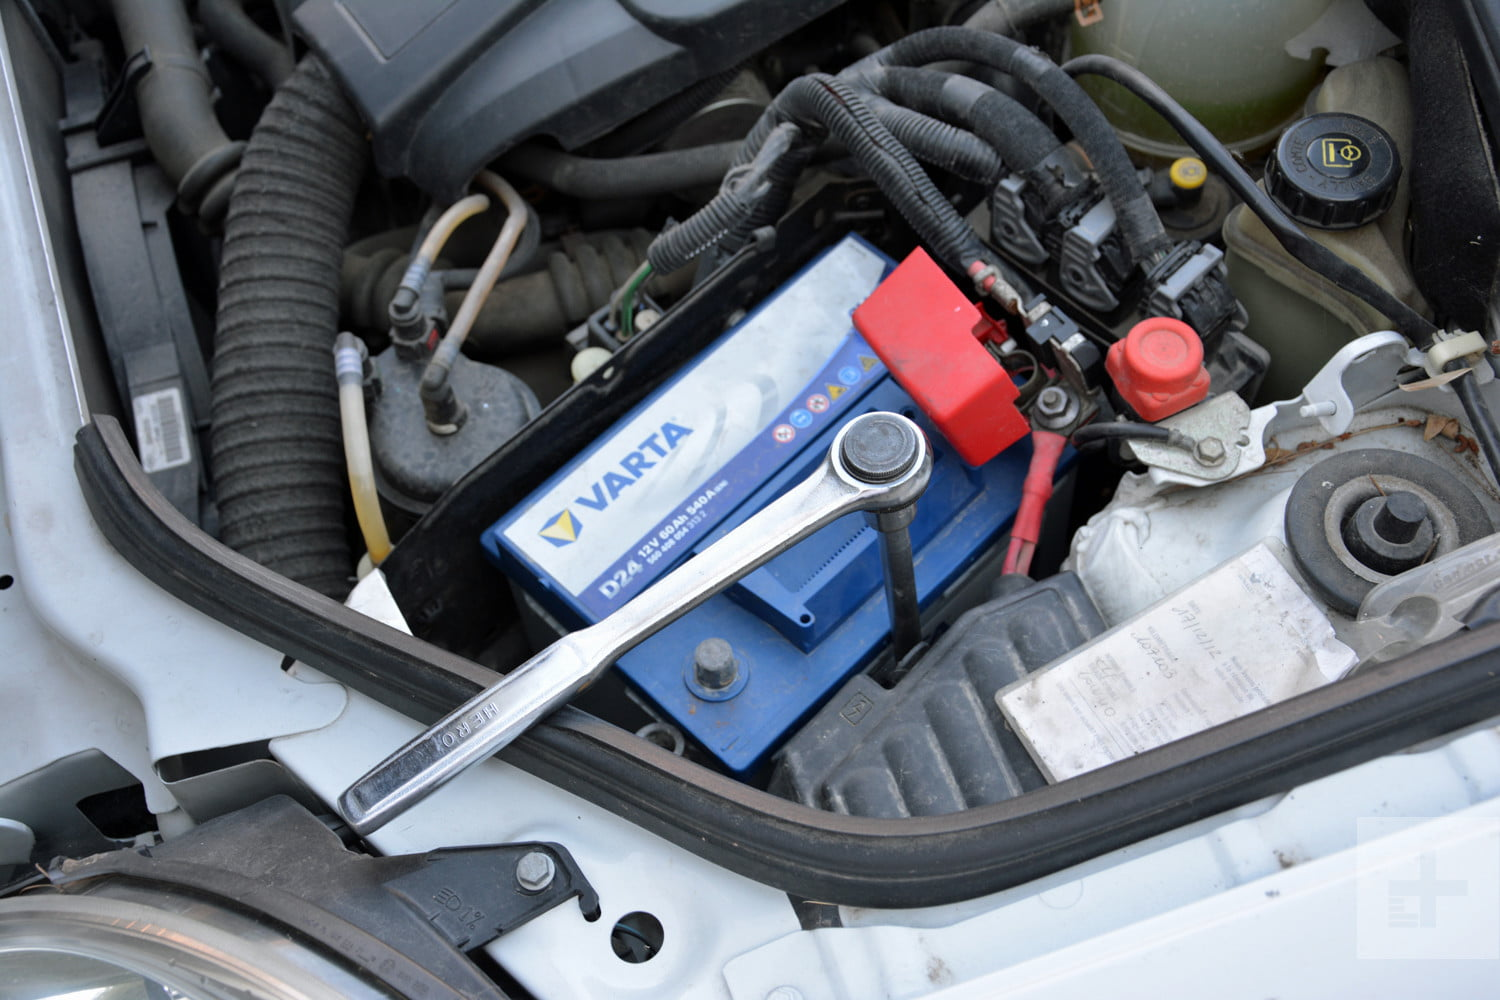 Battery Car: Instructions And Photos On How To Change A Car Battery